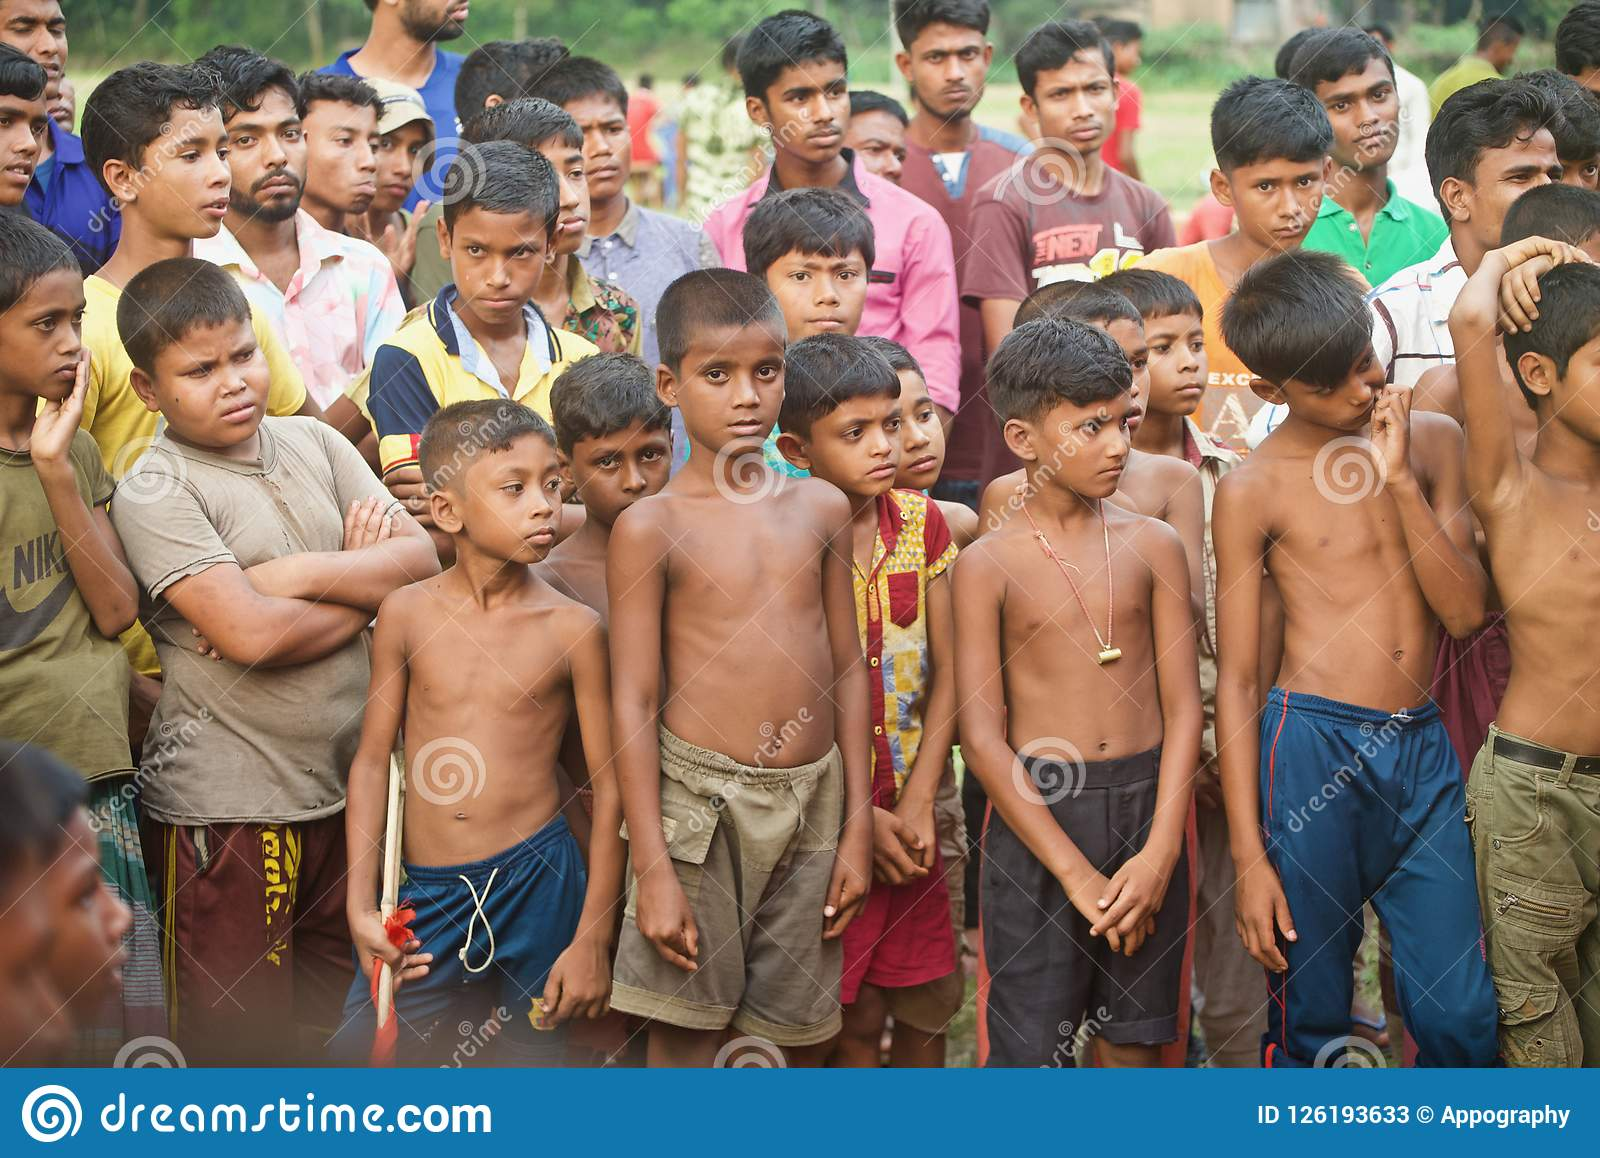 Poor village children standing together isolated unique photo